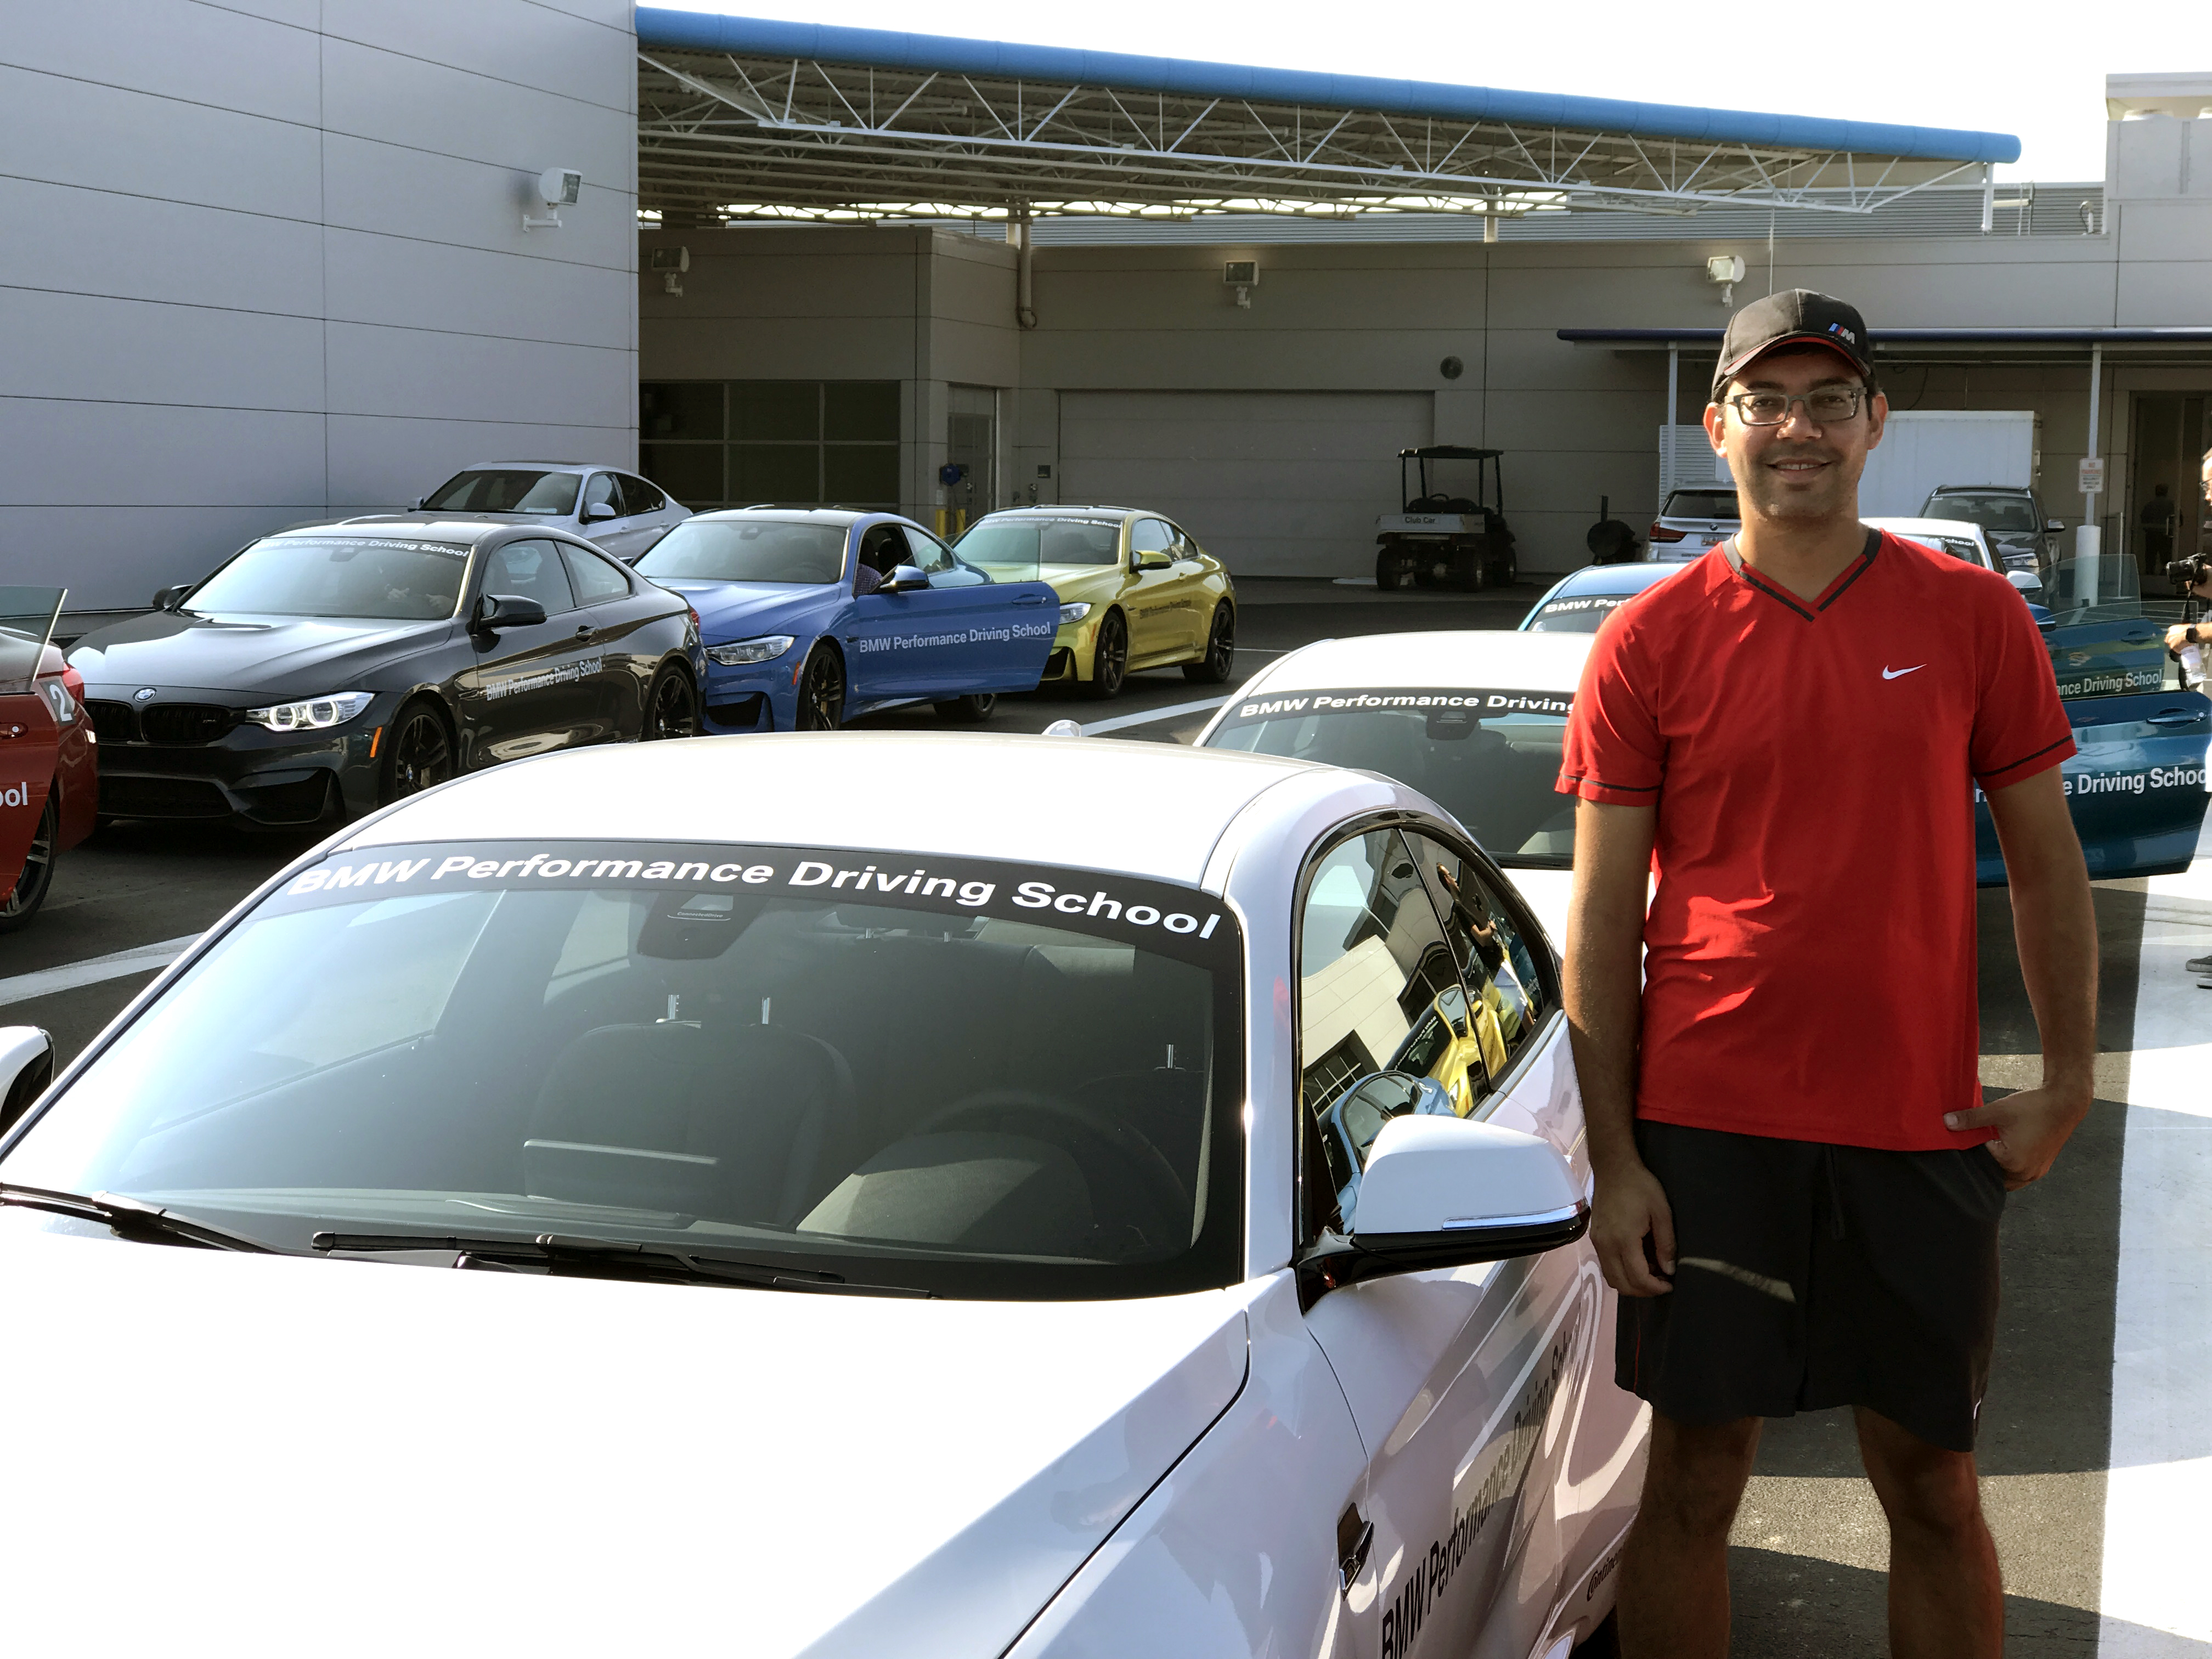 Aashim at the BMW performance driving school in Greenville, SC